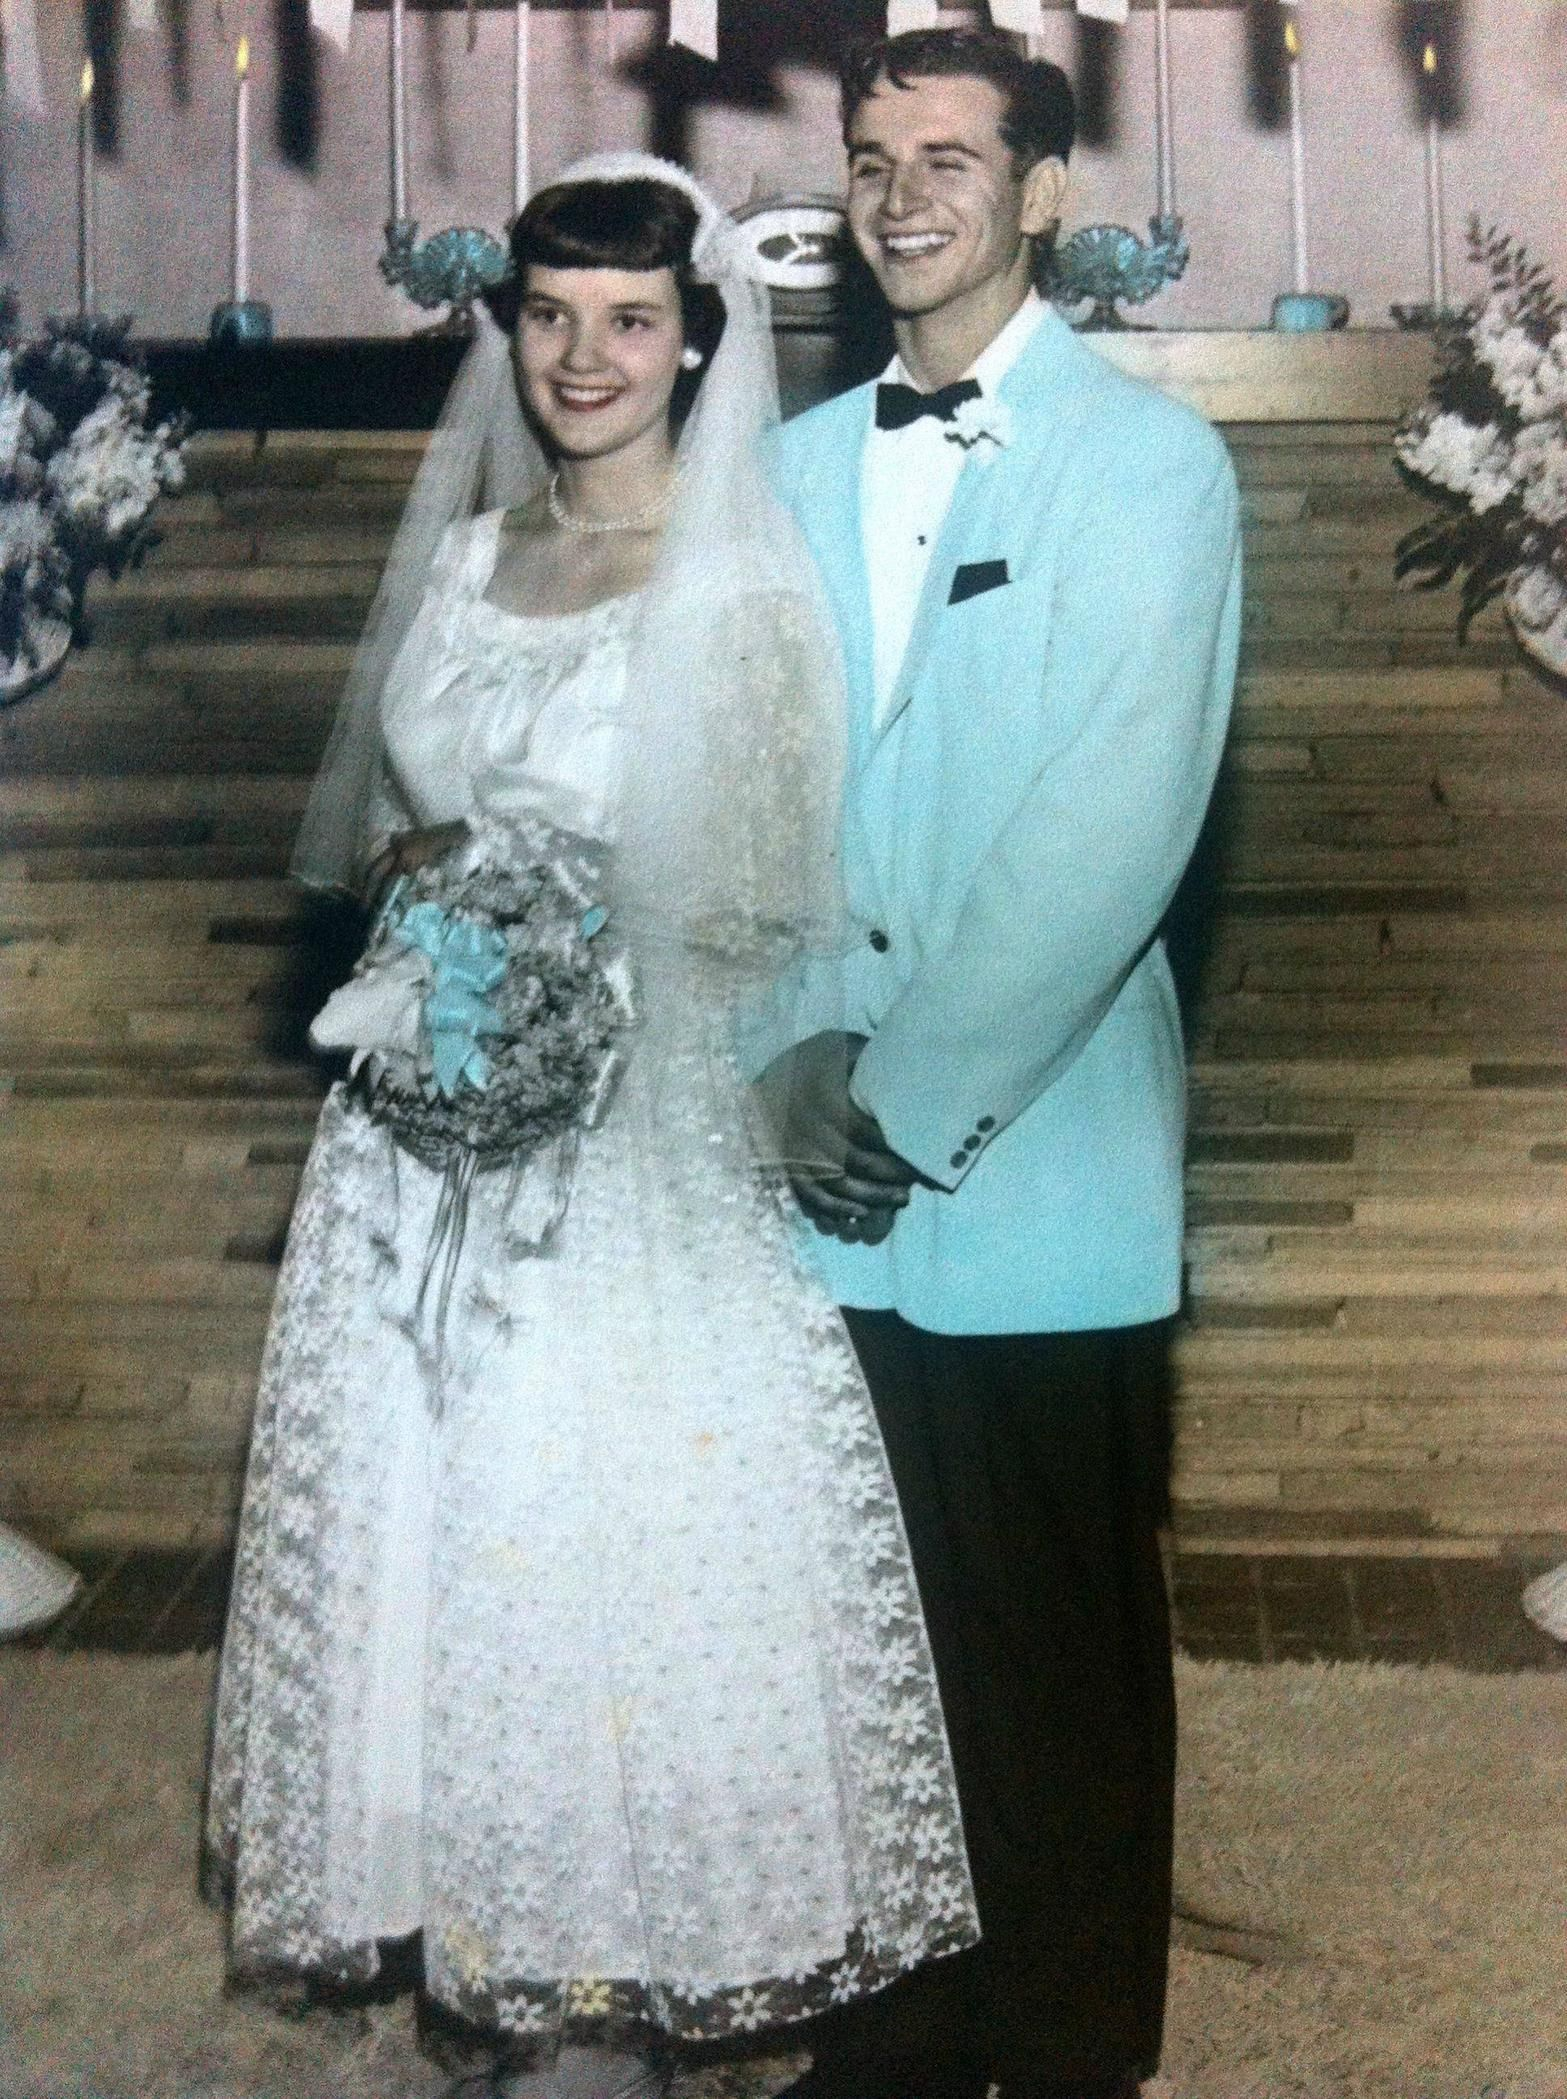 My Grandparents Wedding Picture Colored Wedding Dresses